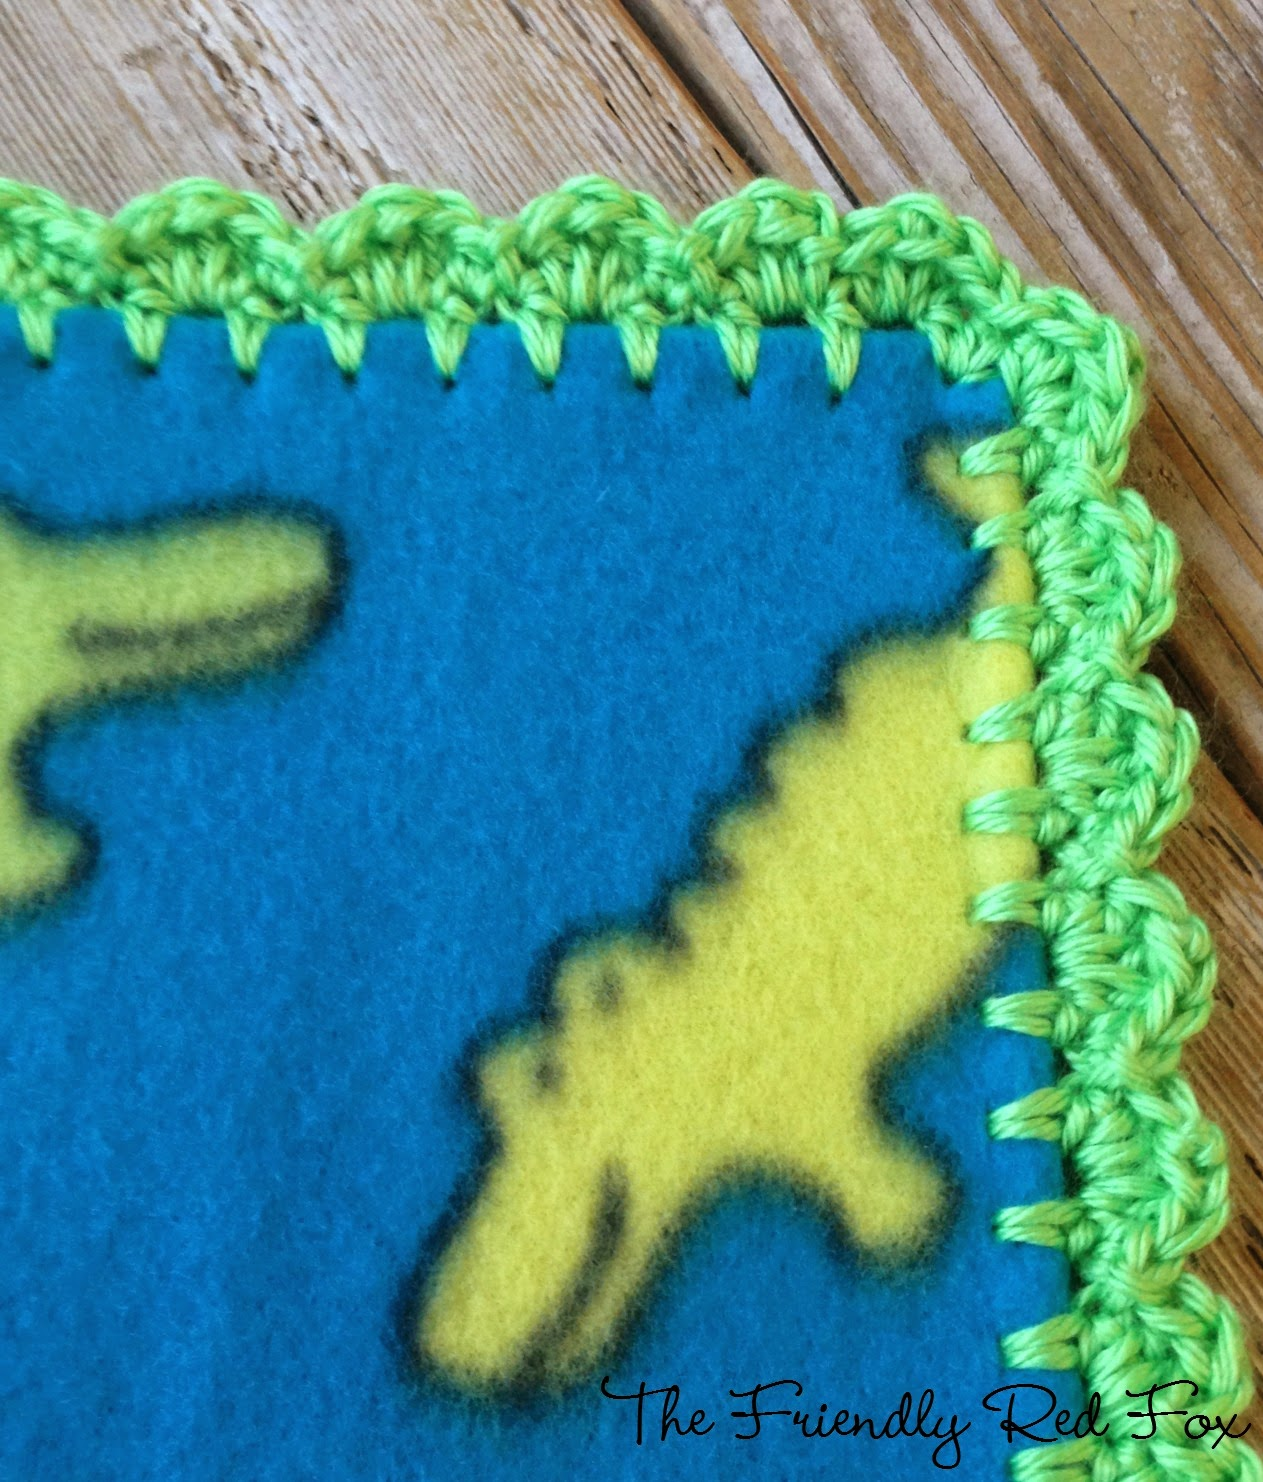 Crochet Baby Blanket Edging Tutorial : Crochet Edge on Fleece Blanket Tutorial - The Friendly Red Fox